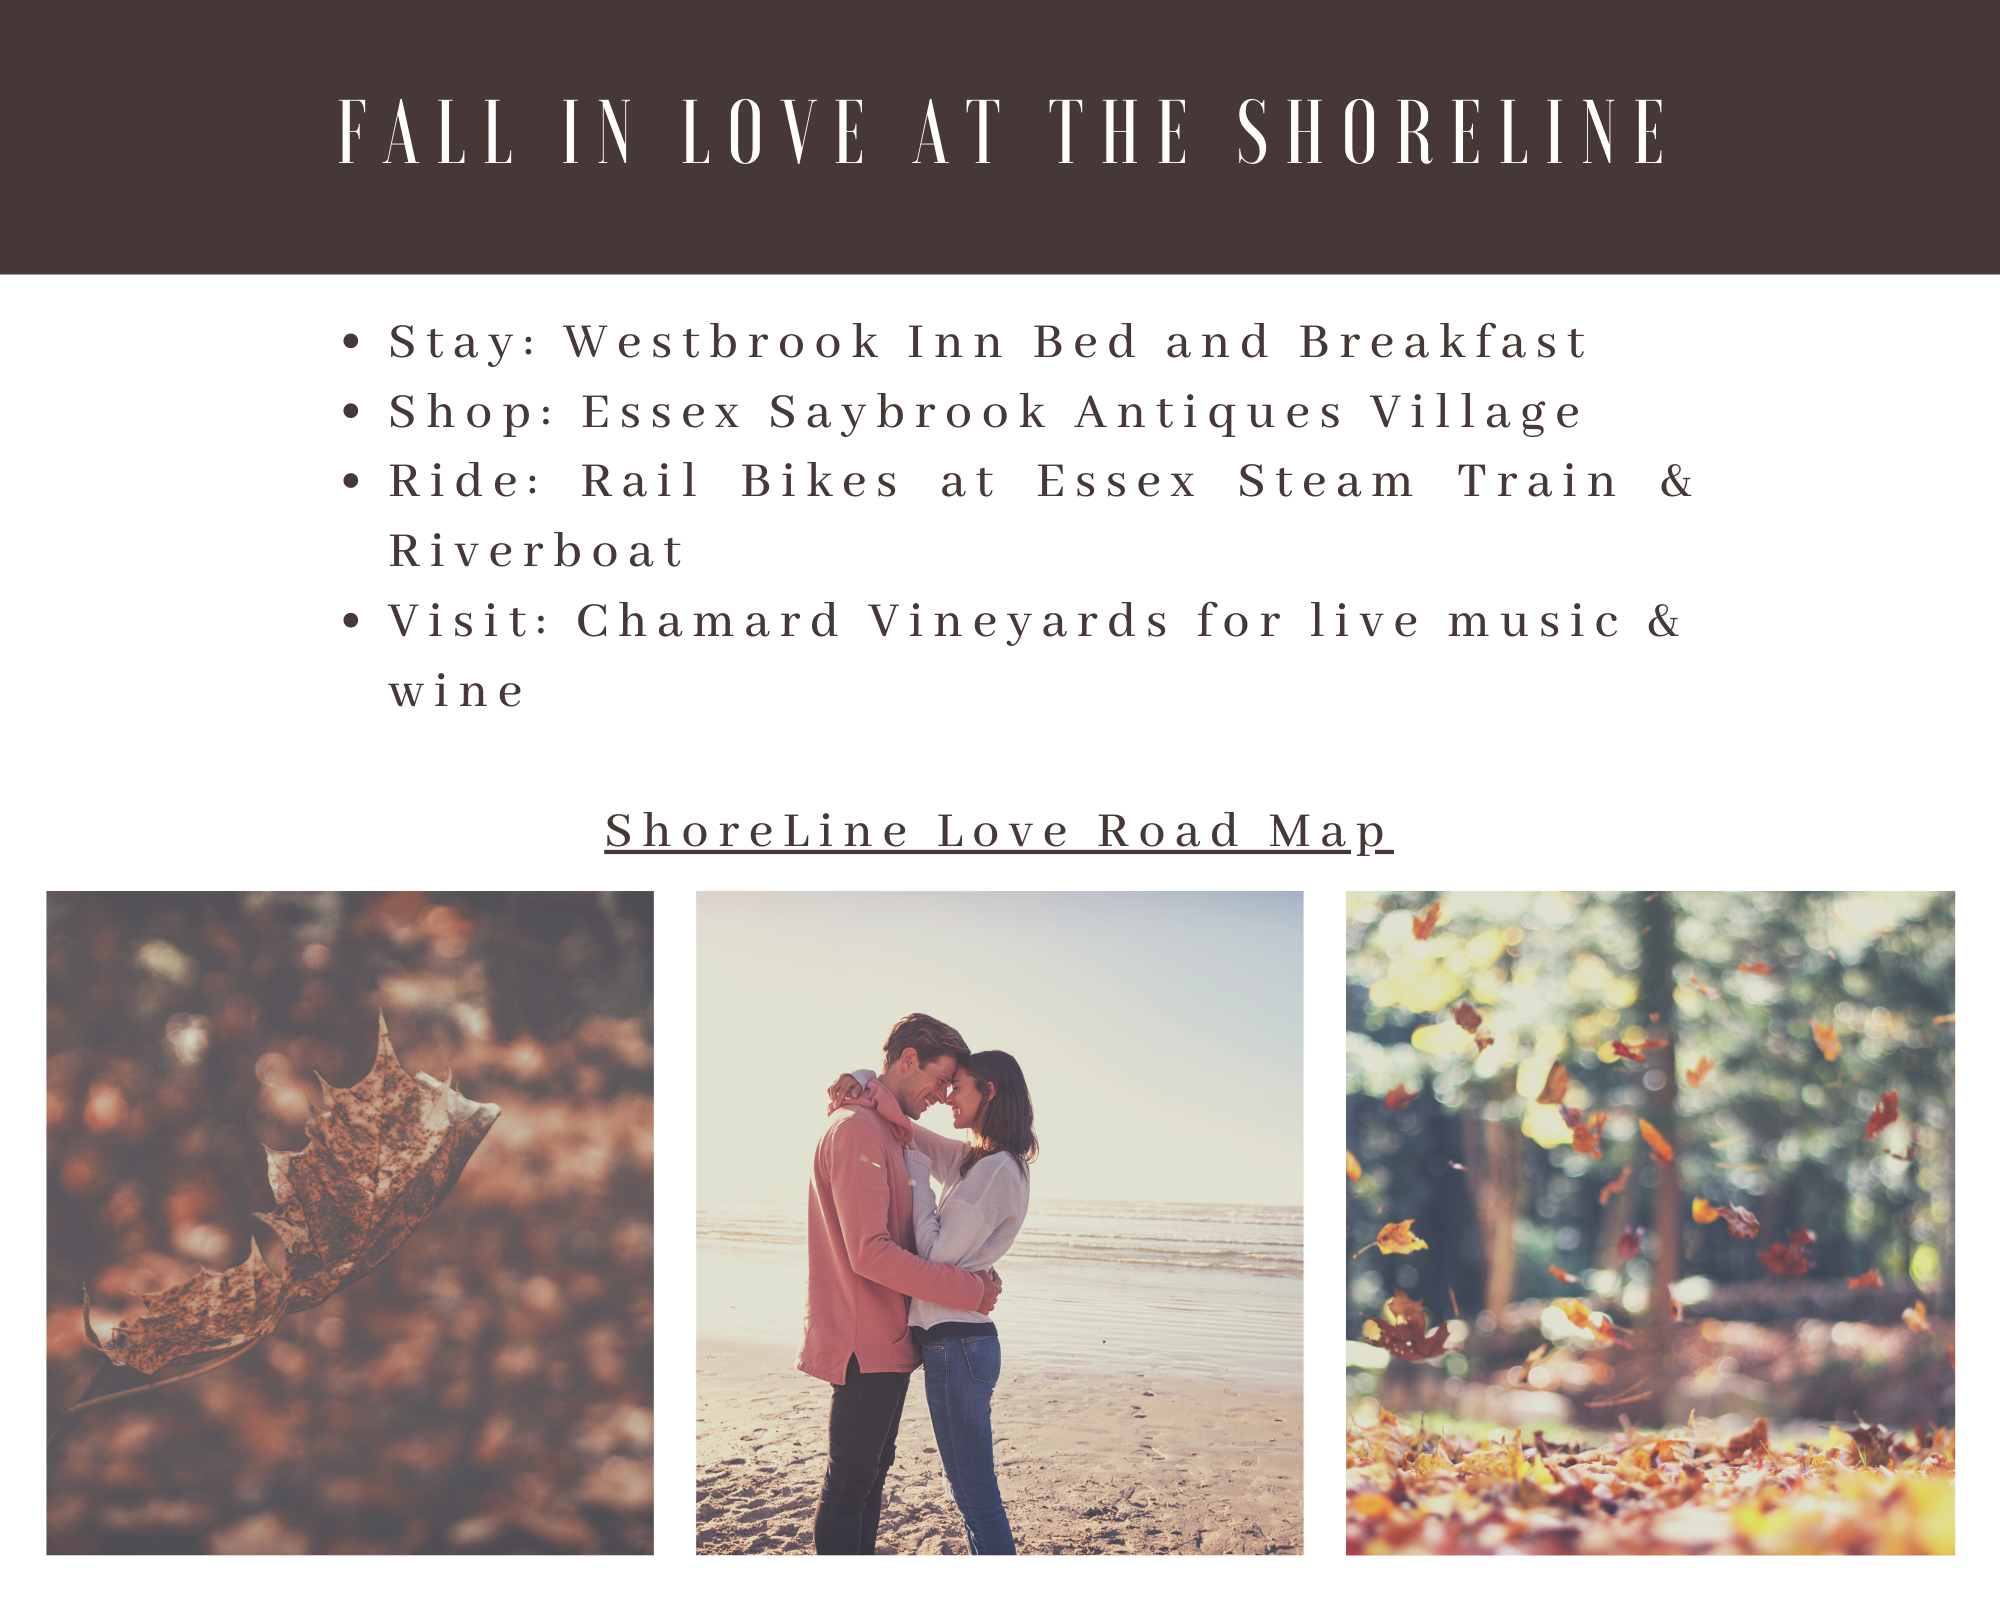 Fall in Love at the Shoreline